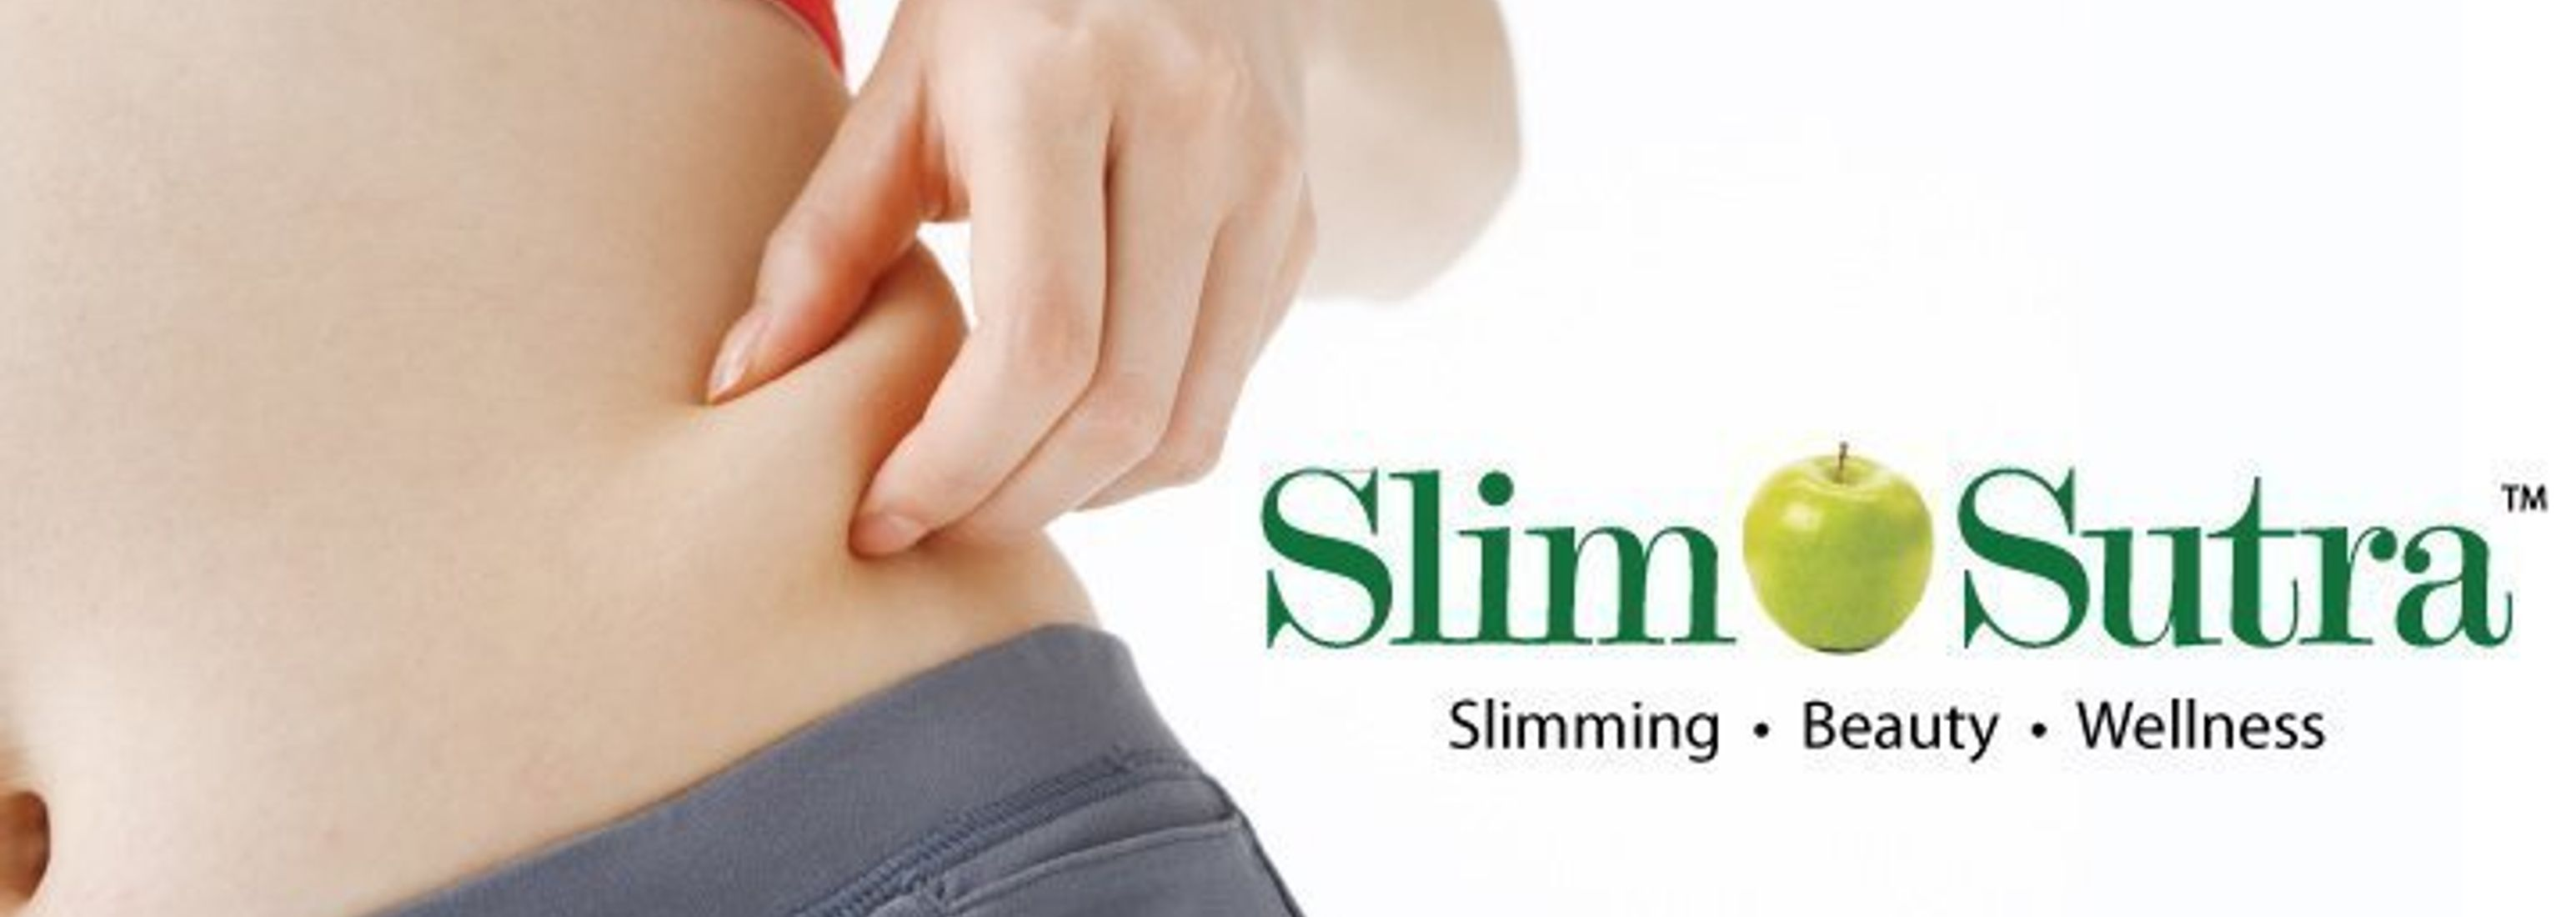 slimming sutra)